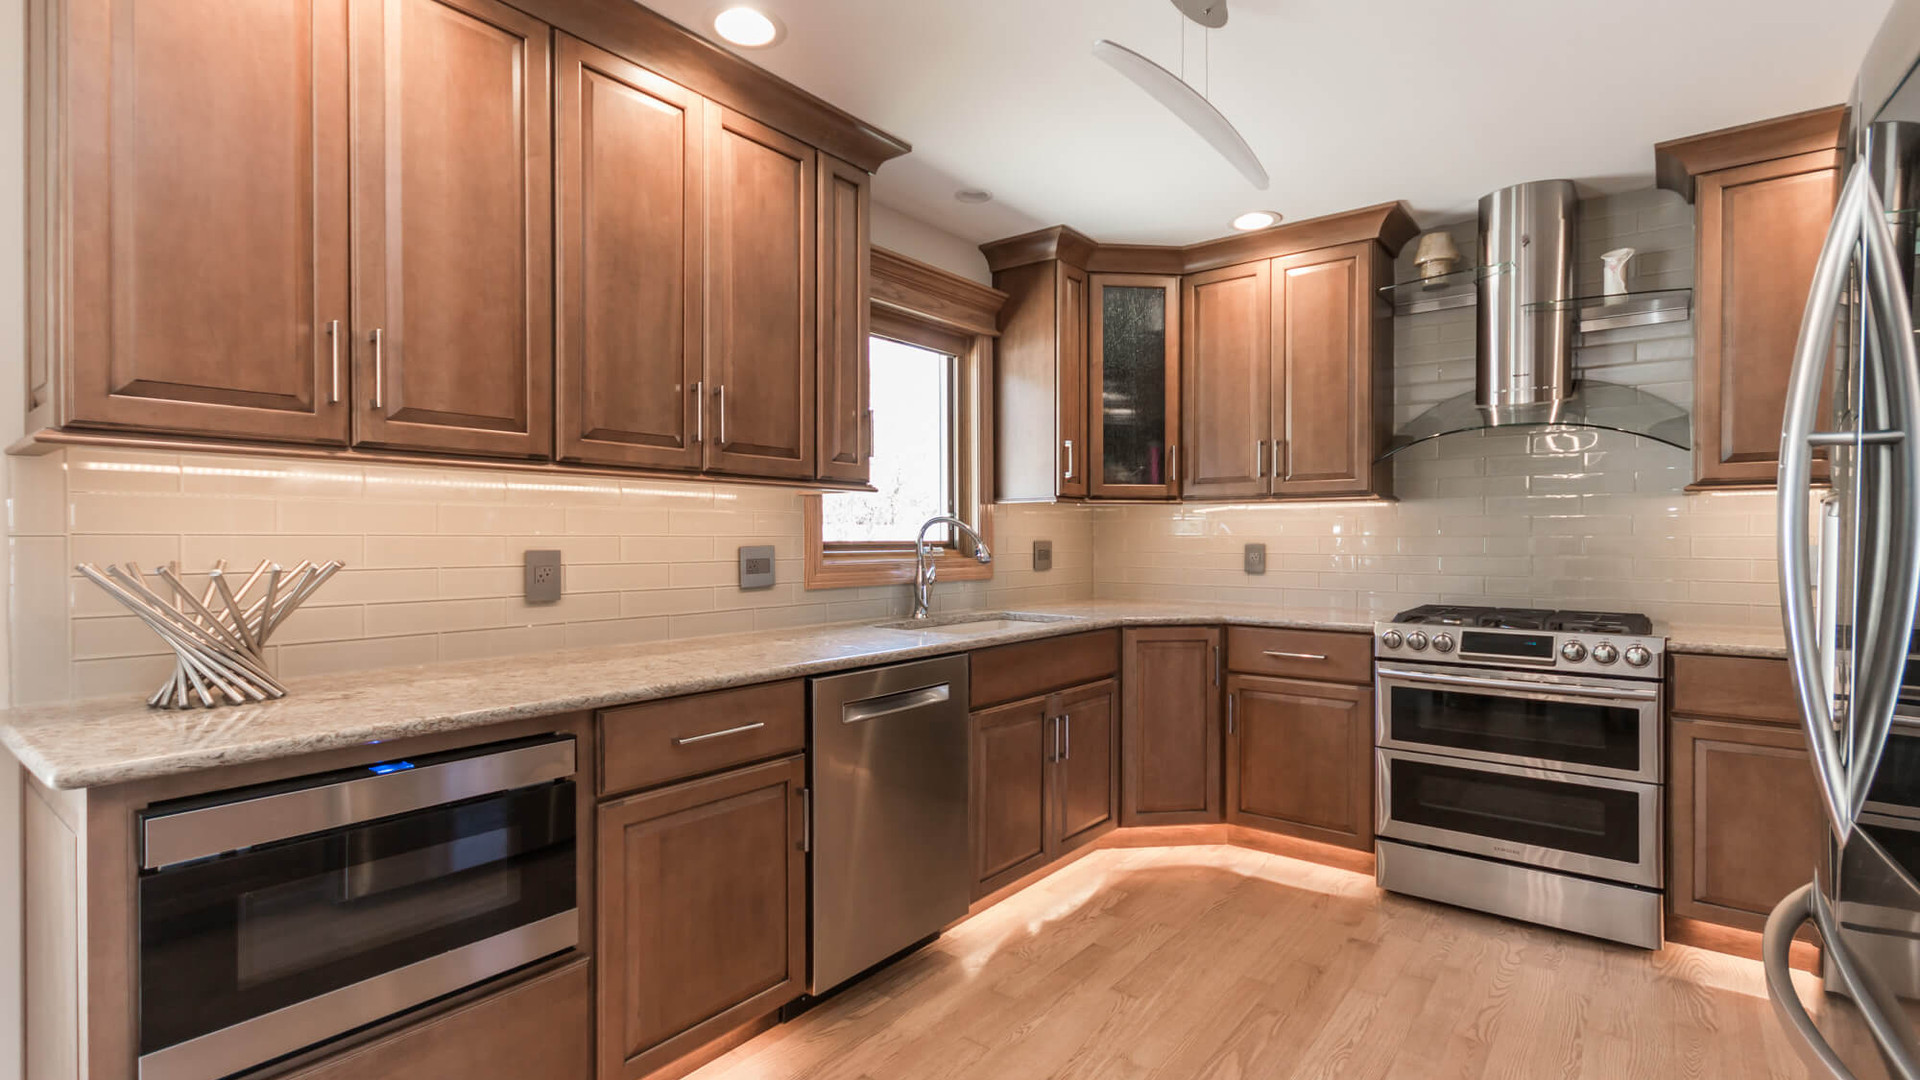 McHenry kitchen bath remodel 3-25-19 Pau